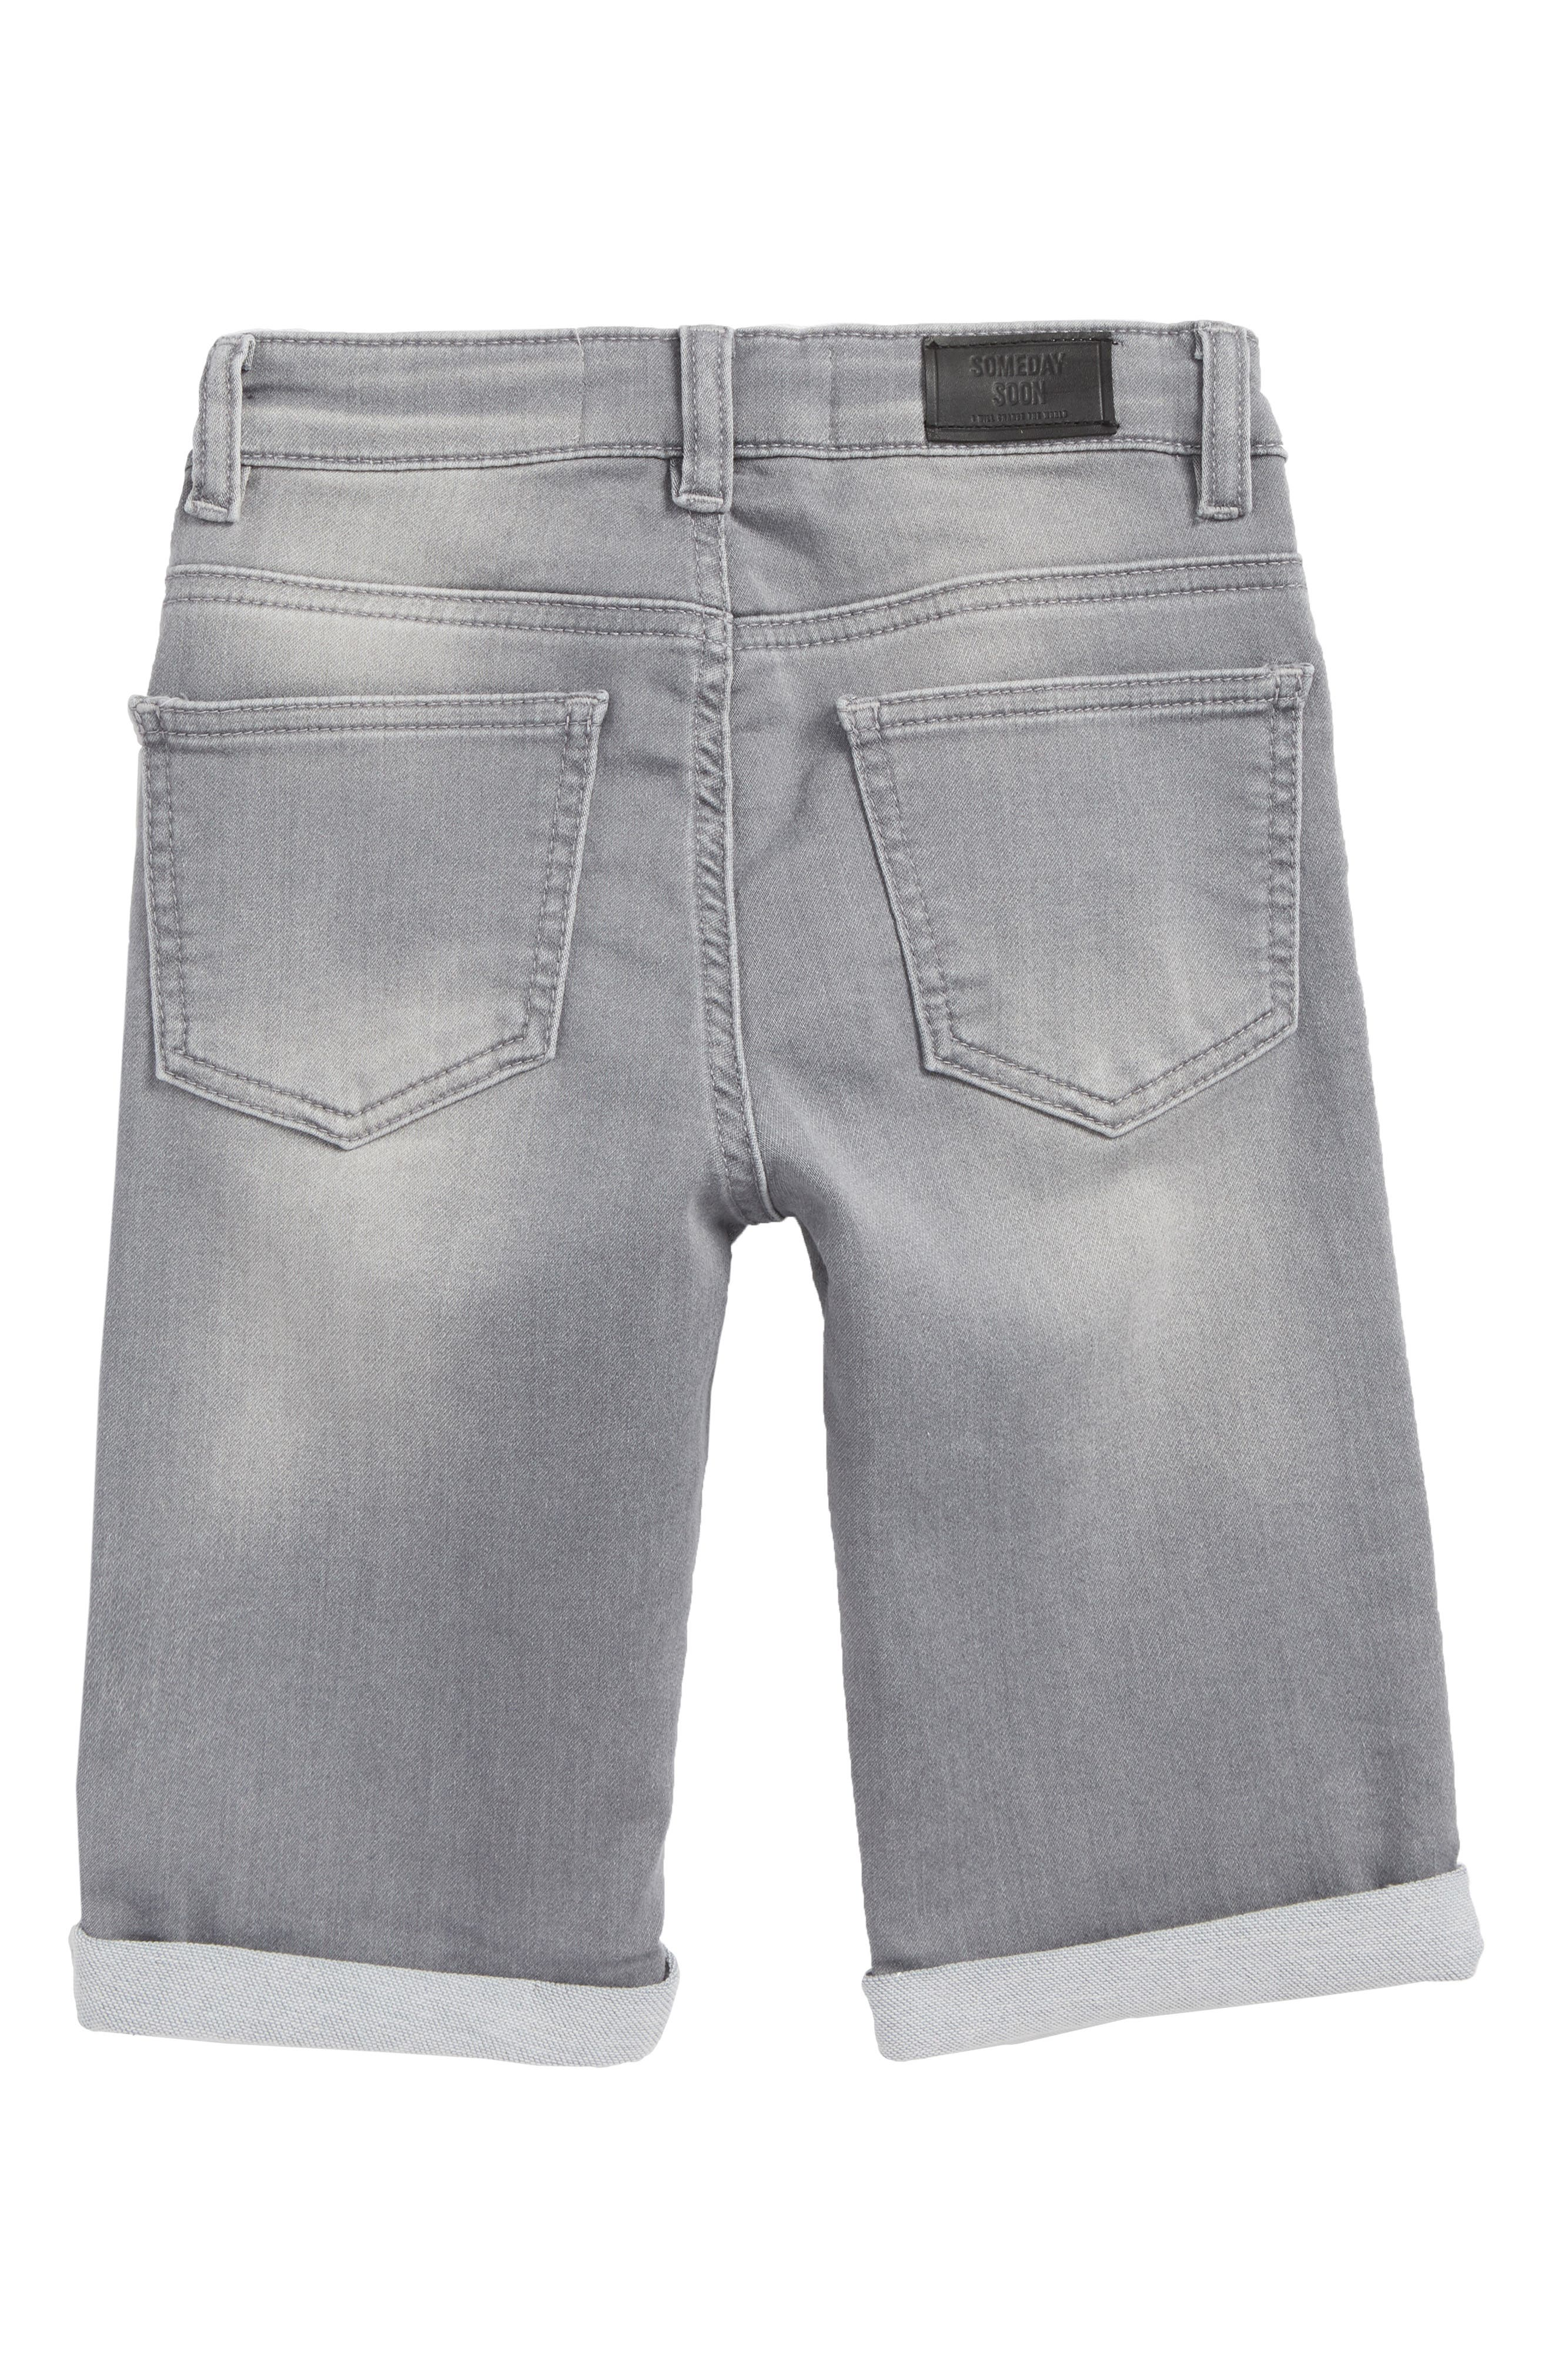 Carl Denim Shorts,                             Alternate thumbnail 2, color,                             020